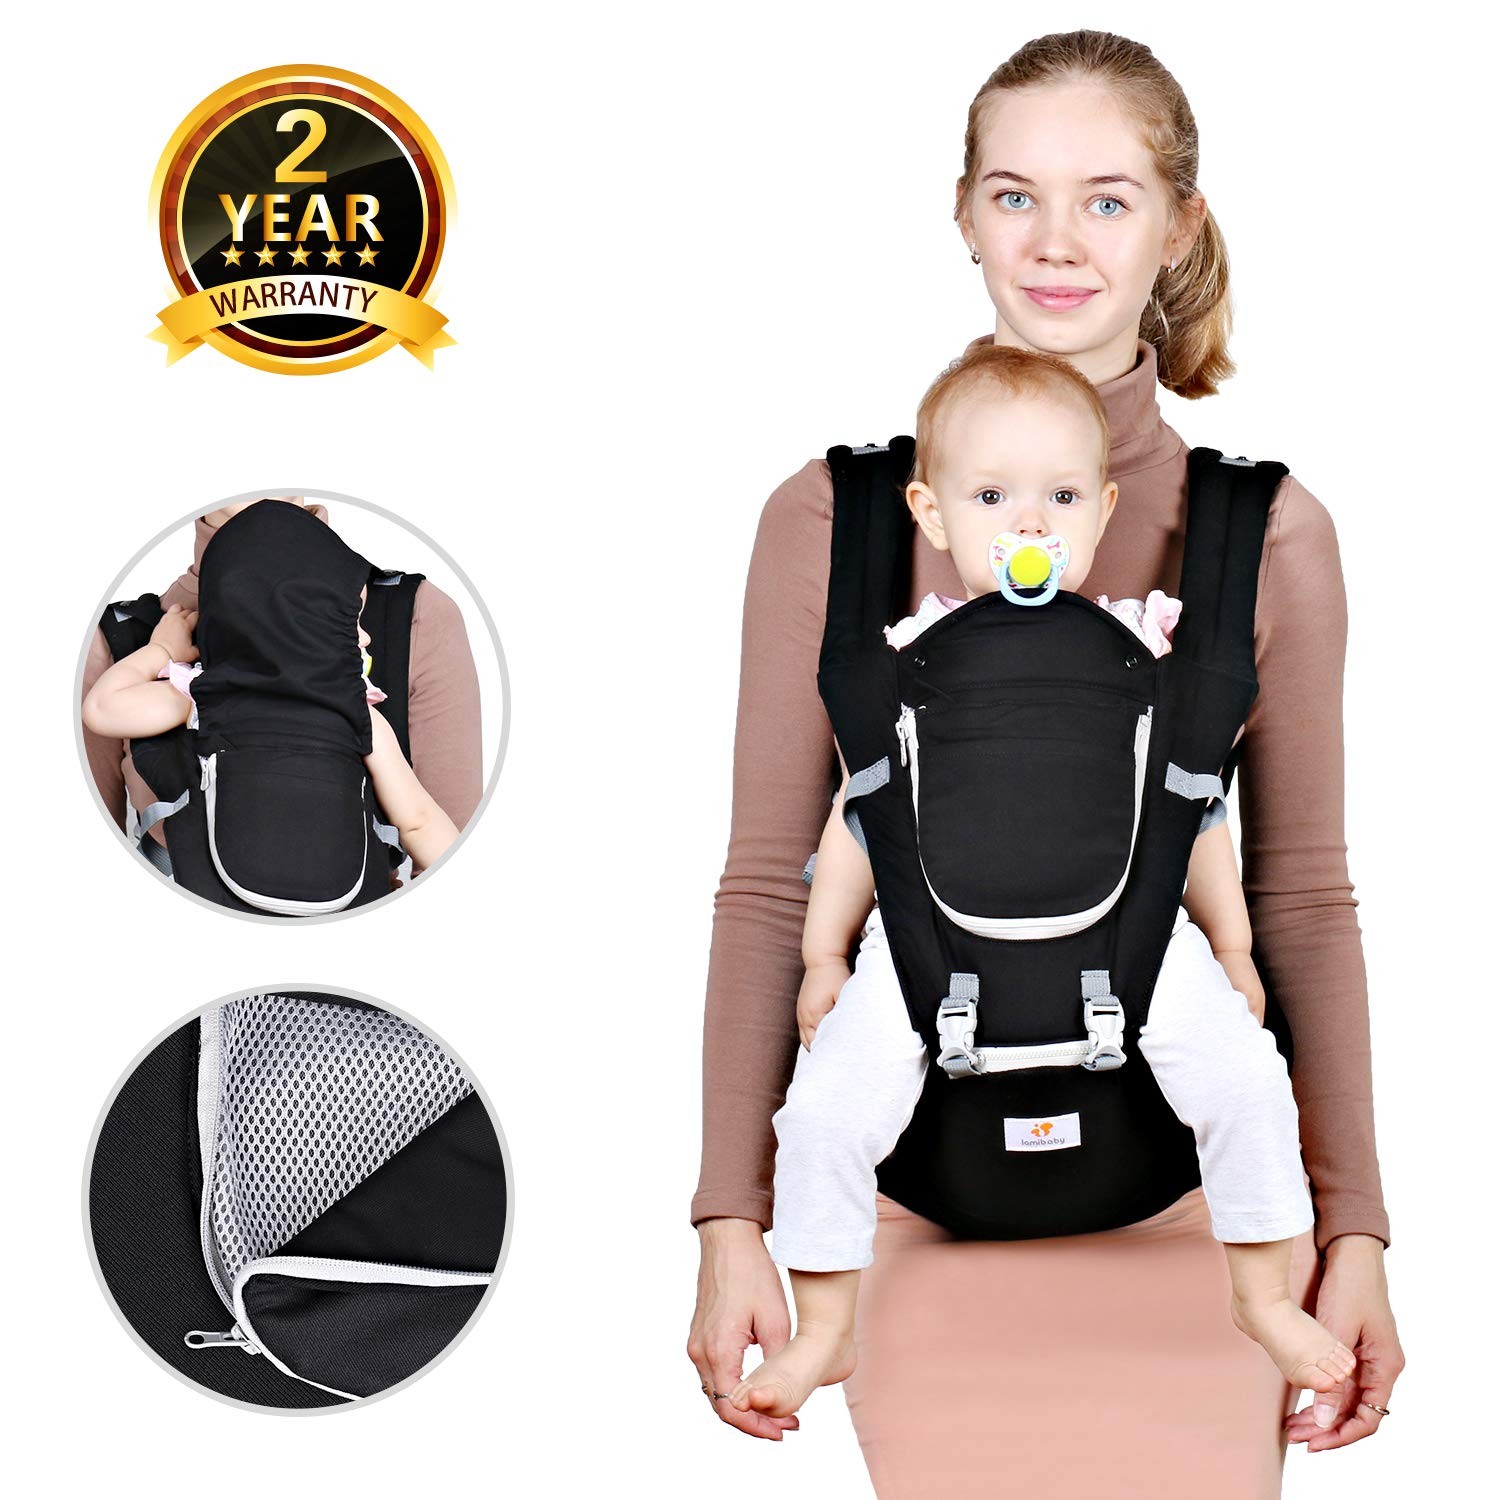 Baby Hip Seat Belt Carrier – Safety Certified Front Facing Back Pain Relief Soft Carrier (Ergonomic M Position), 100% Cotton for All Seasons, Child Infant Toddler, Perfect Baby Shower Gift